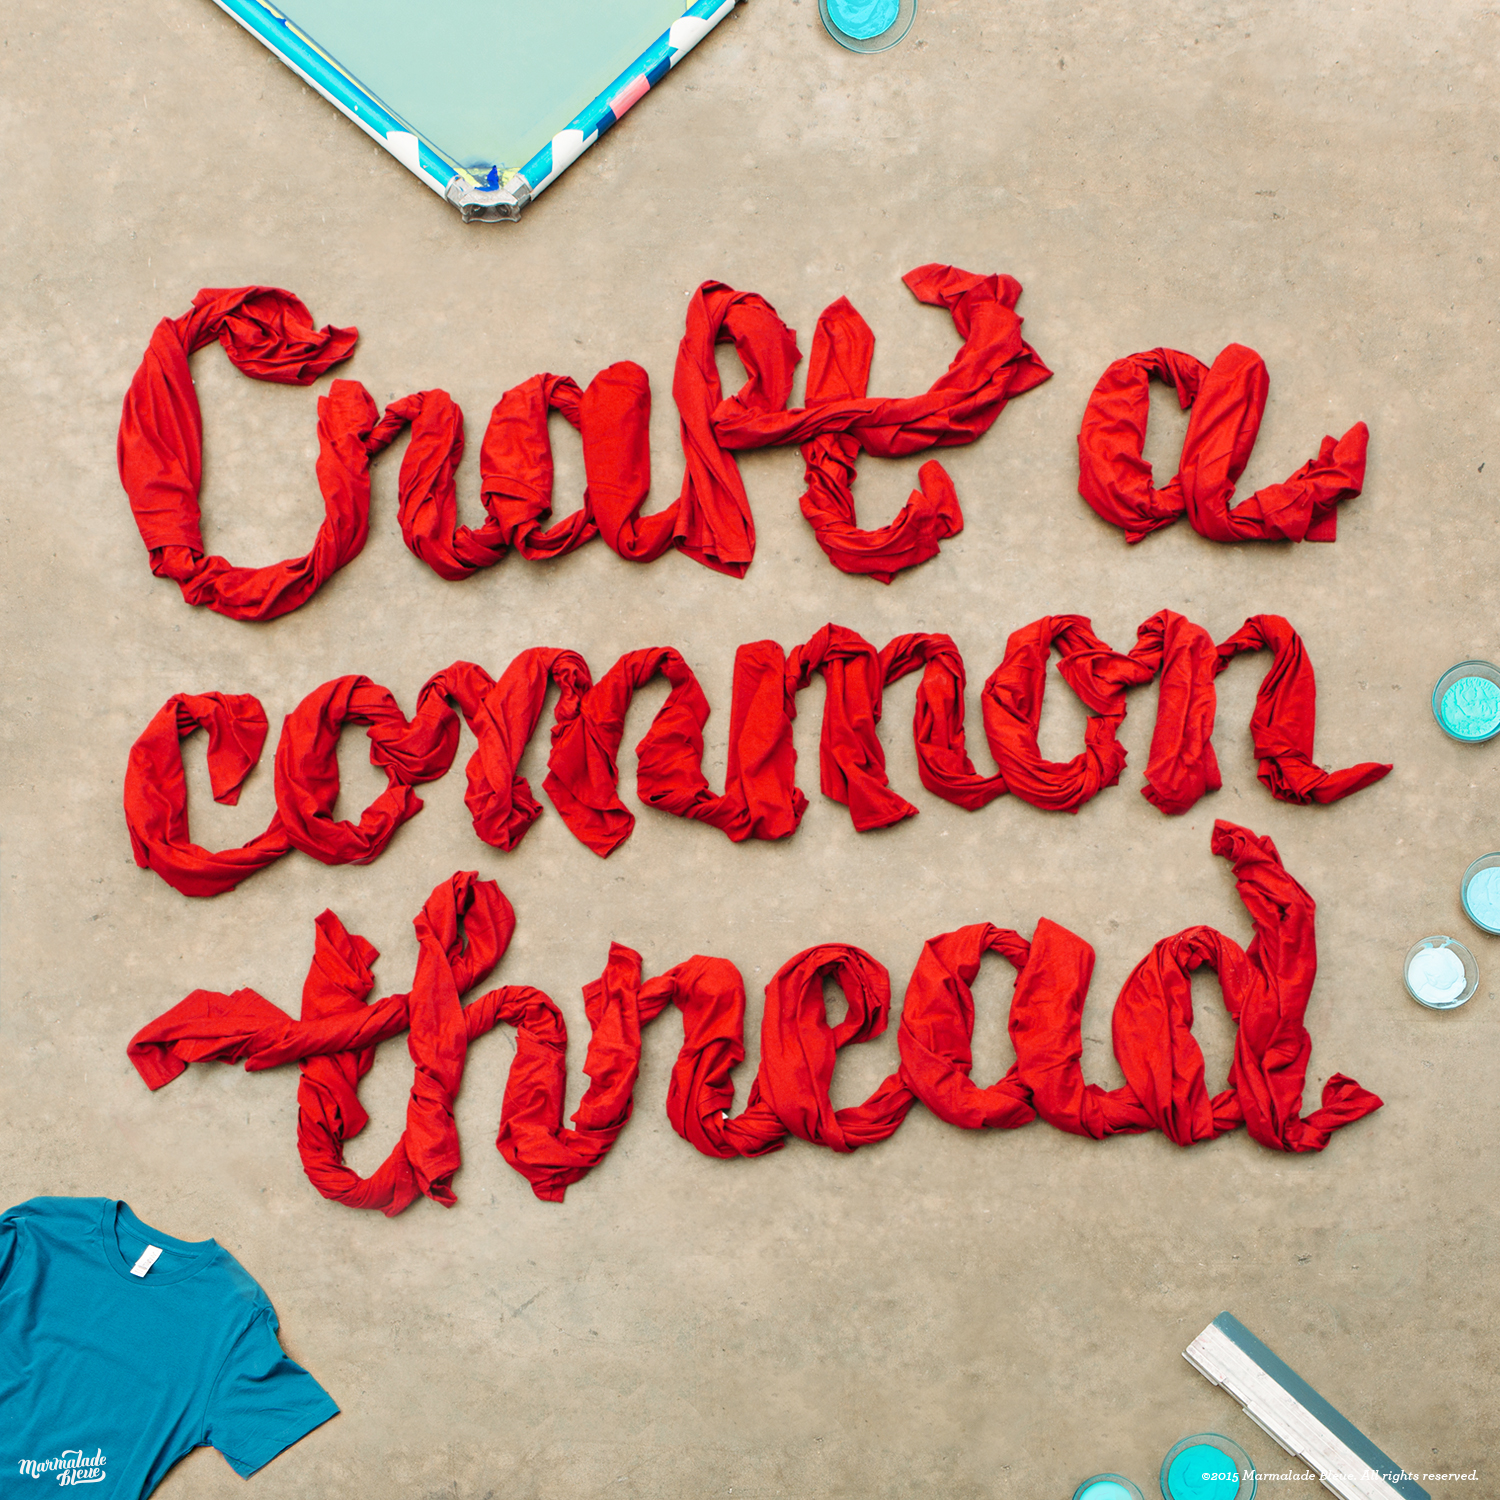 Real Thread + Dimensional Typography